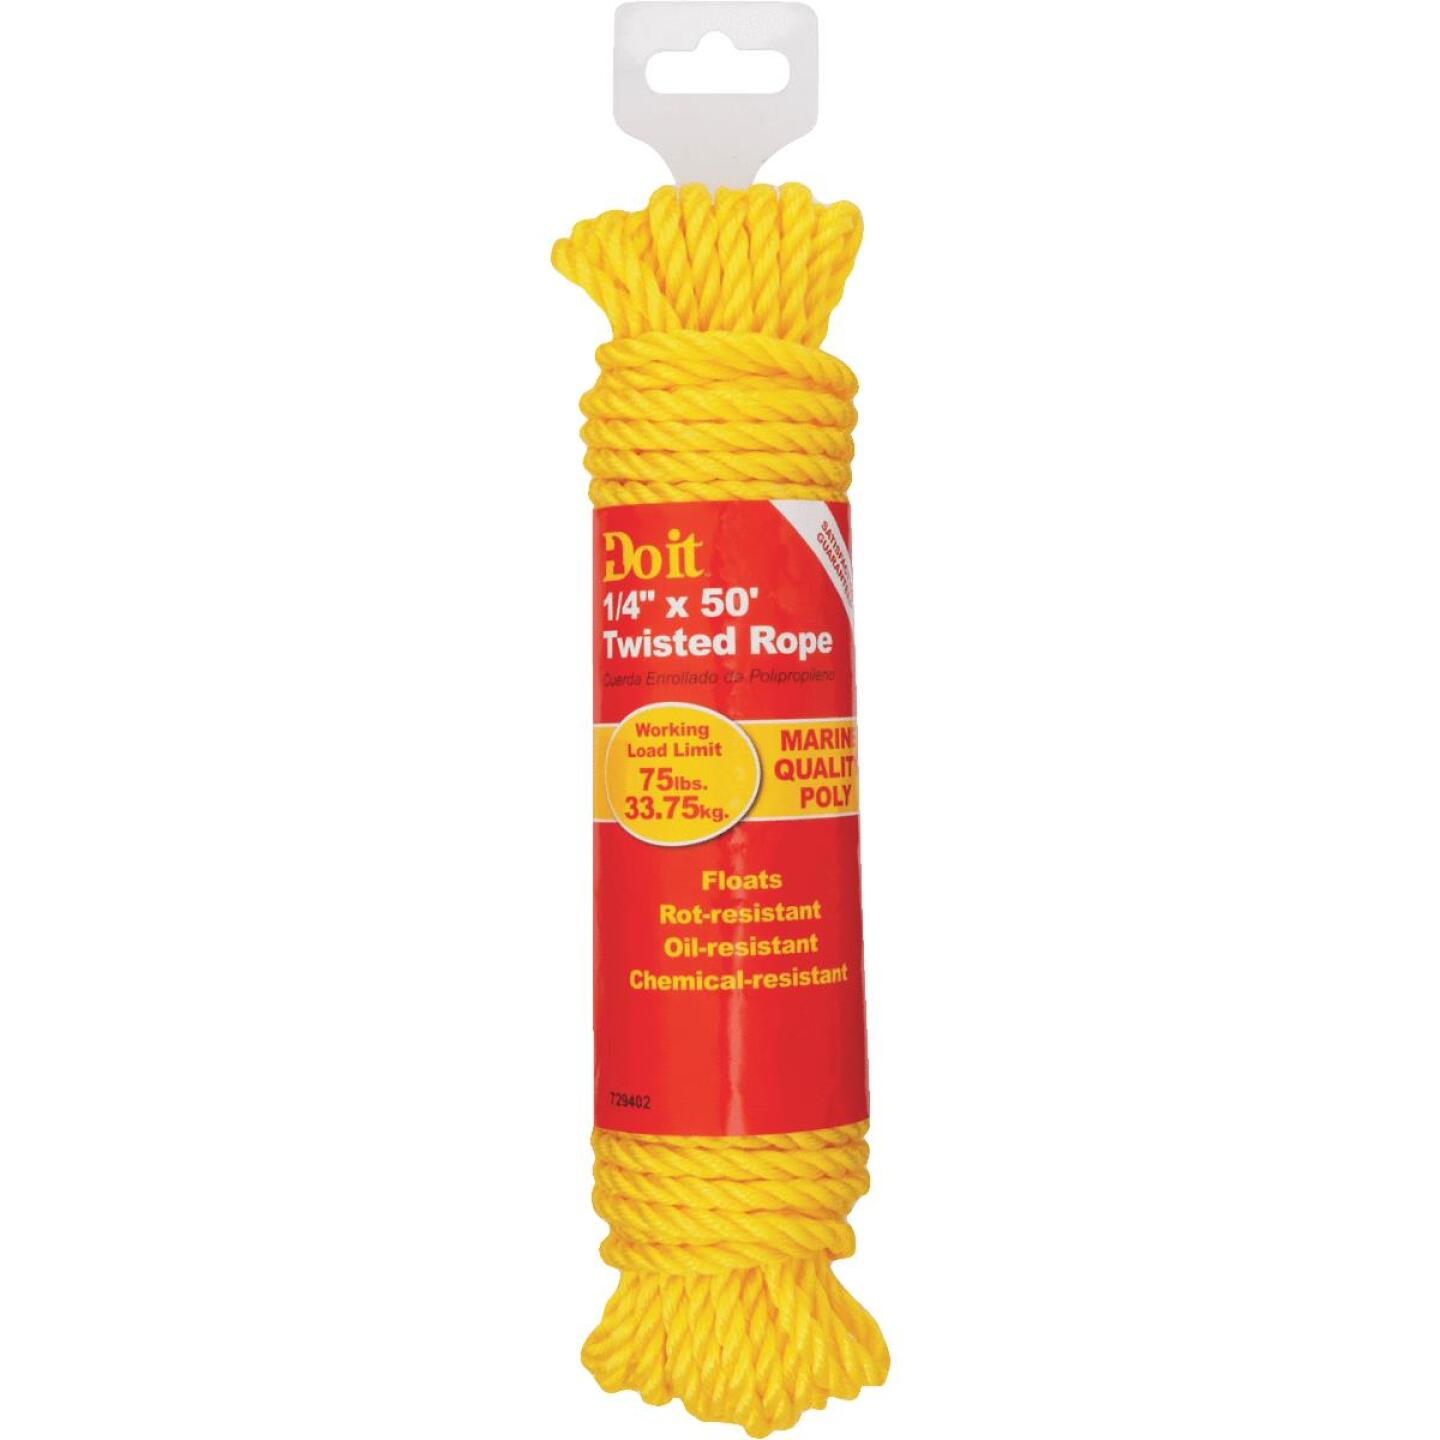 Do it 1/4 In. x 50 Ft. Yellow Twisted Polypropylene Packaged Rope Image 2